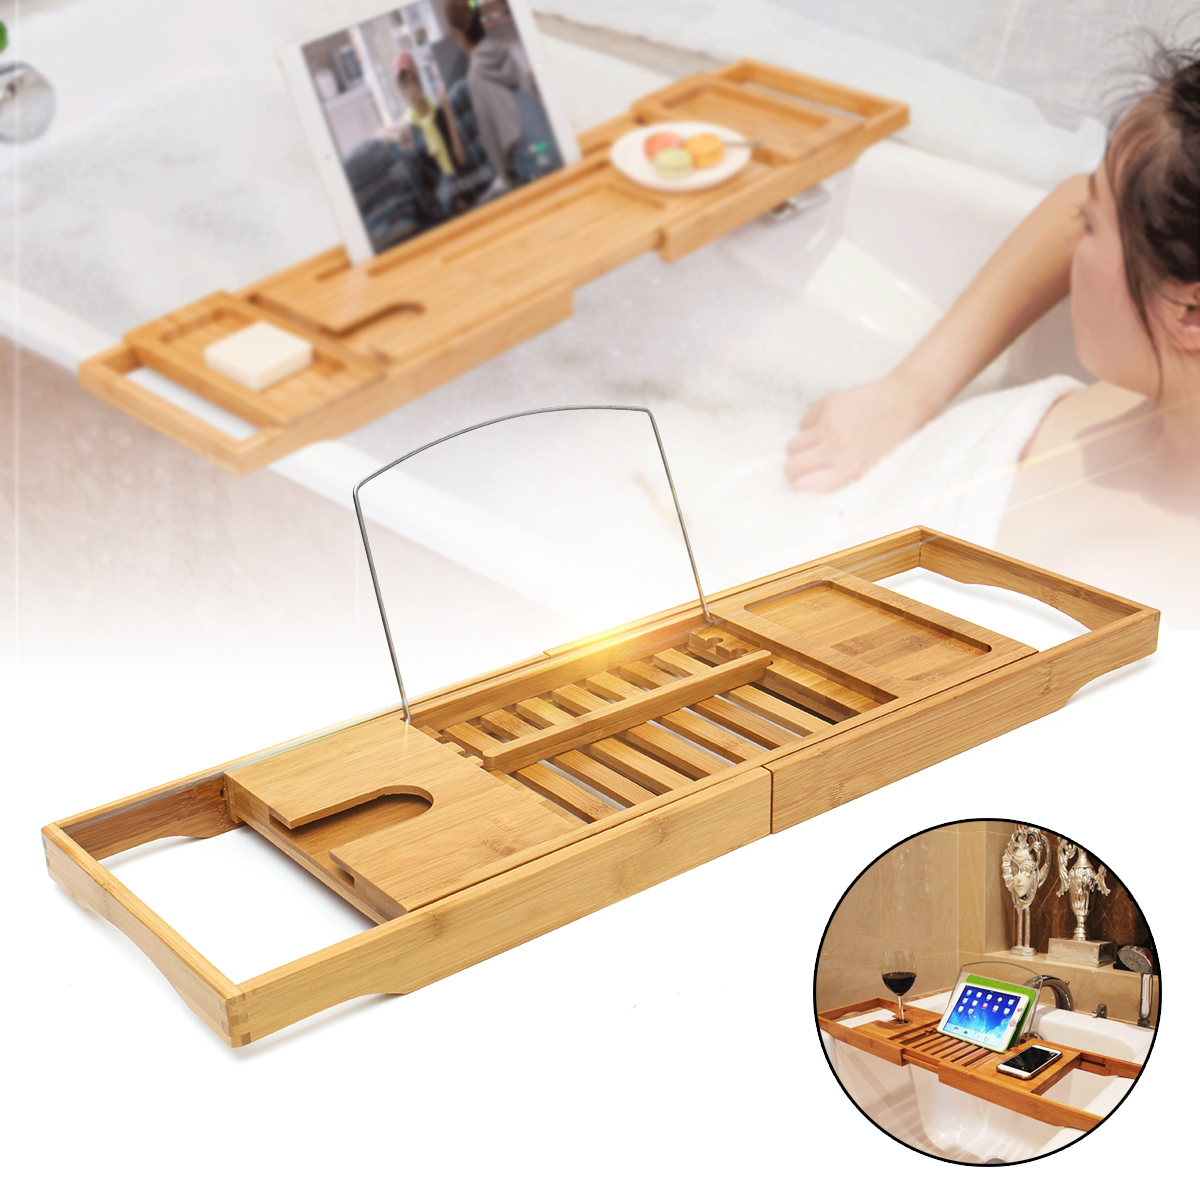 Luxury Bathroom Bamboo Bath Shelf Bath Tray Bathtub Holder Bridge Tub Caddy Tray Rack Wine Holder Bathtub Rack SupportLuxury Bathroom Bamboo Bath Shelf Bath Tray Bathtub Holder Bridge Tub Caddy Tray Rack Wine Holder Bathtub Rack Support